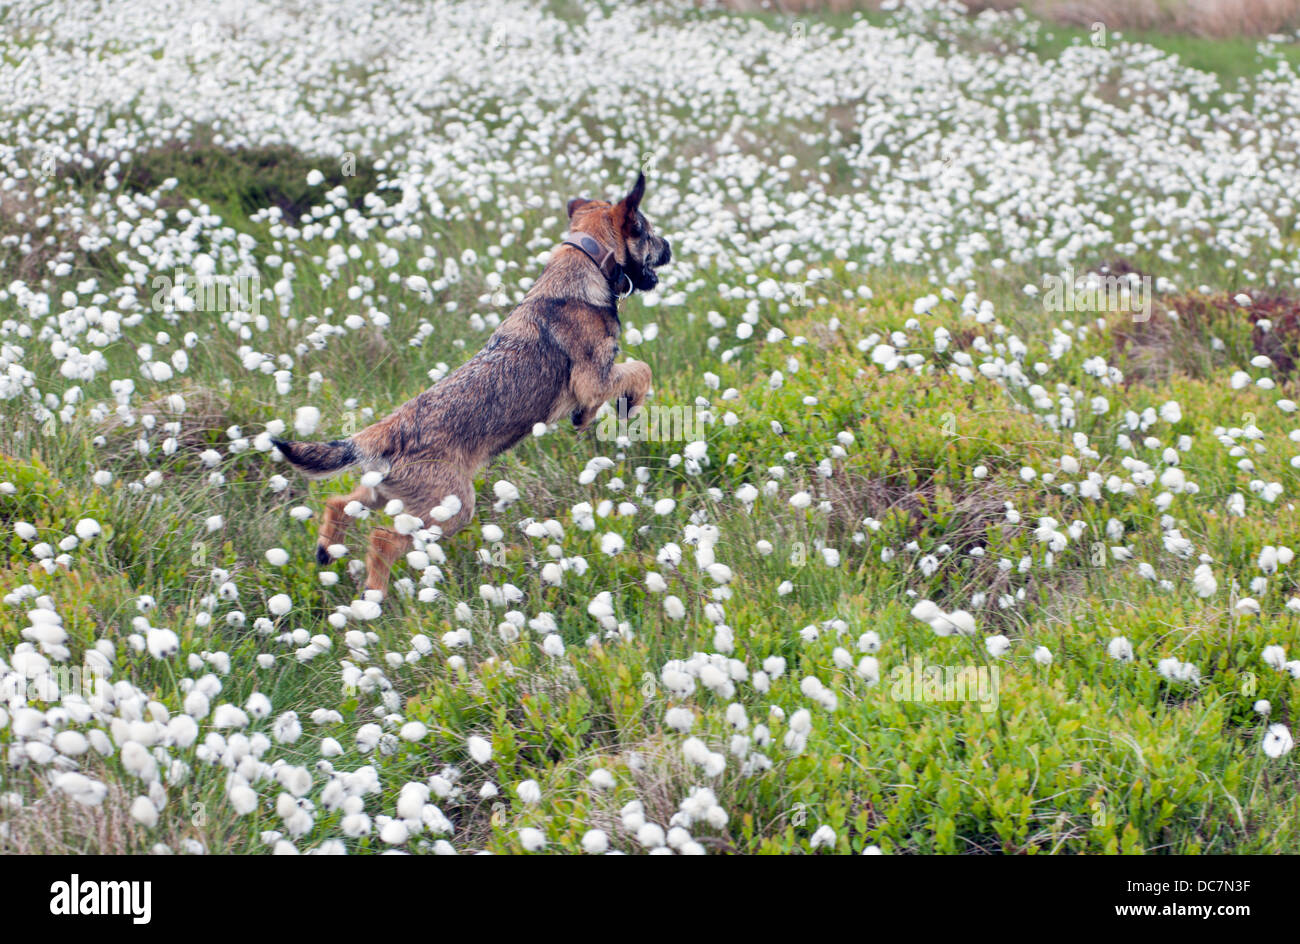 Border terrier dog six months old leaping on moorland covered with flowering cotton grass - Stock Image